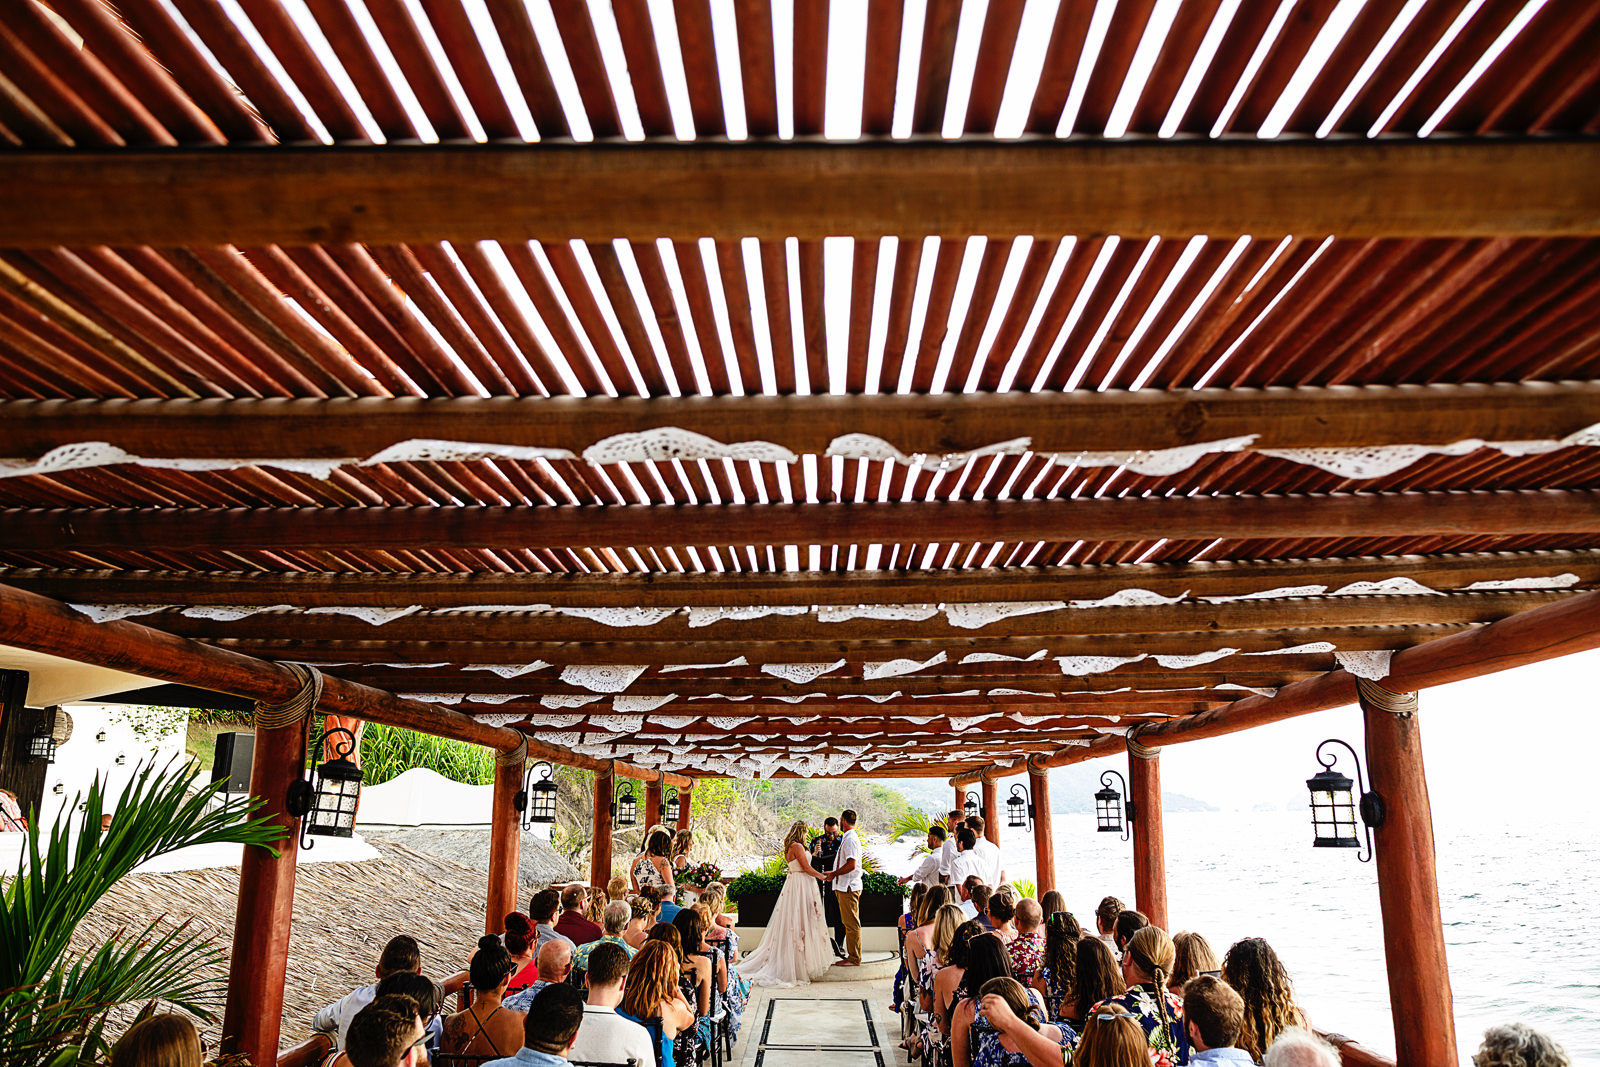 wedding-ceremony-hotel-playa-fiesta-terrace-shade.jpg